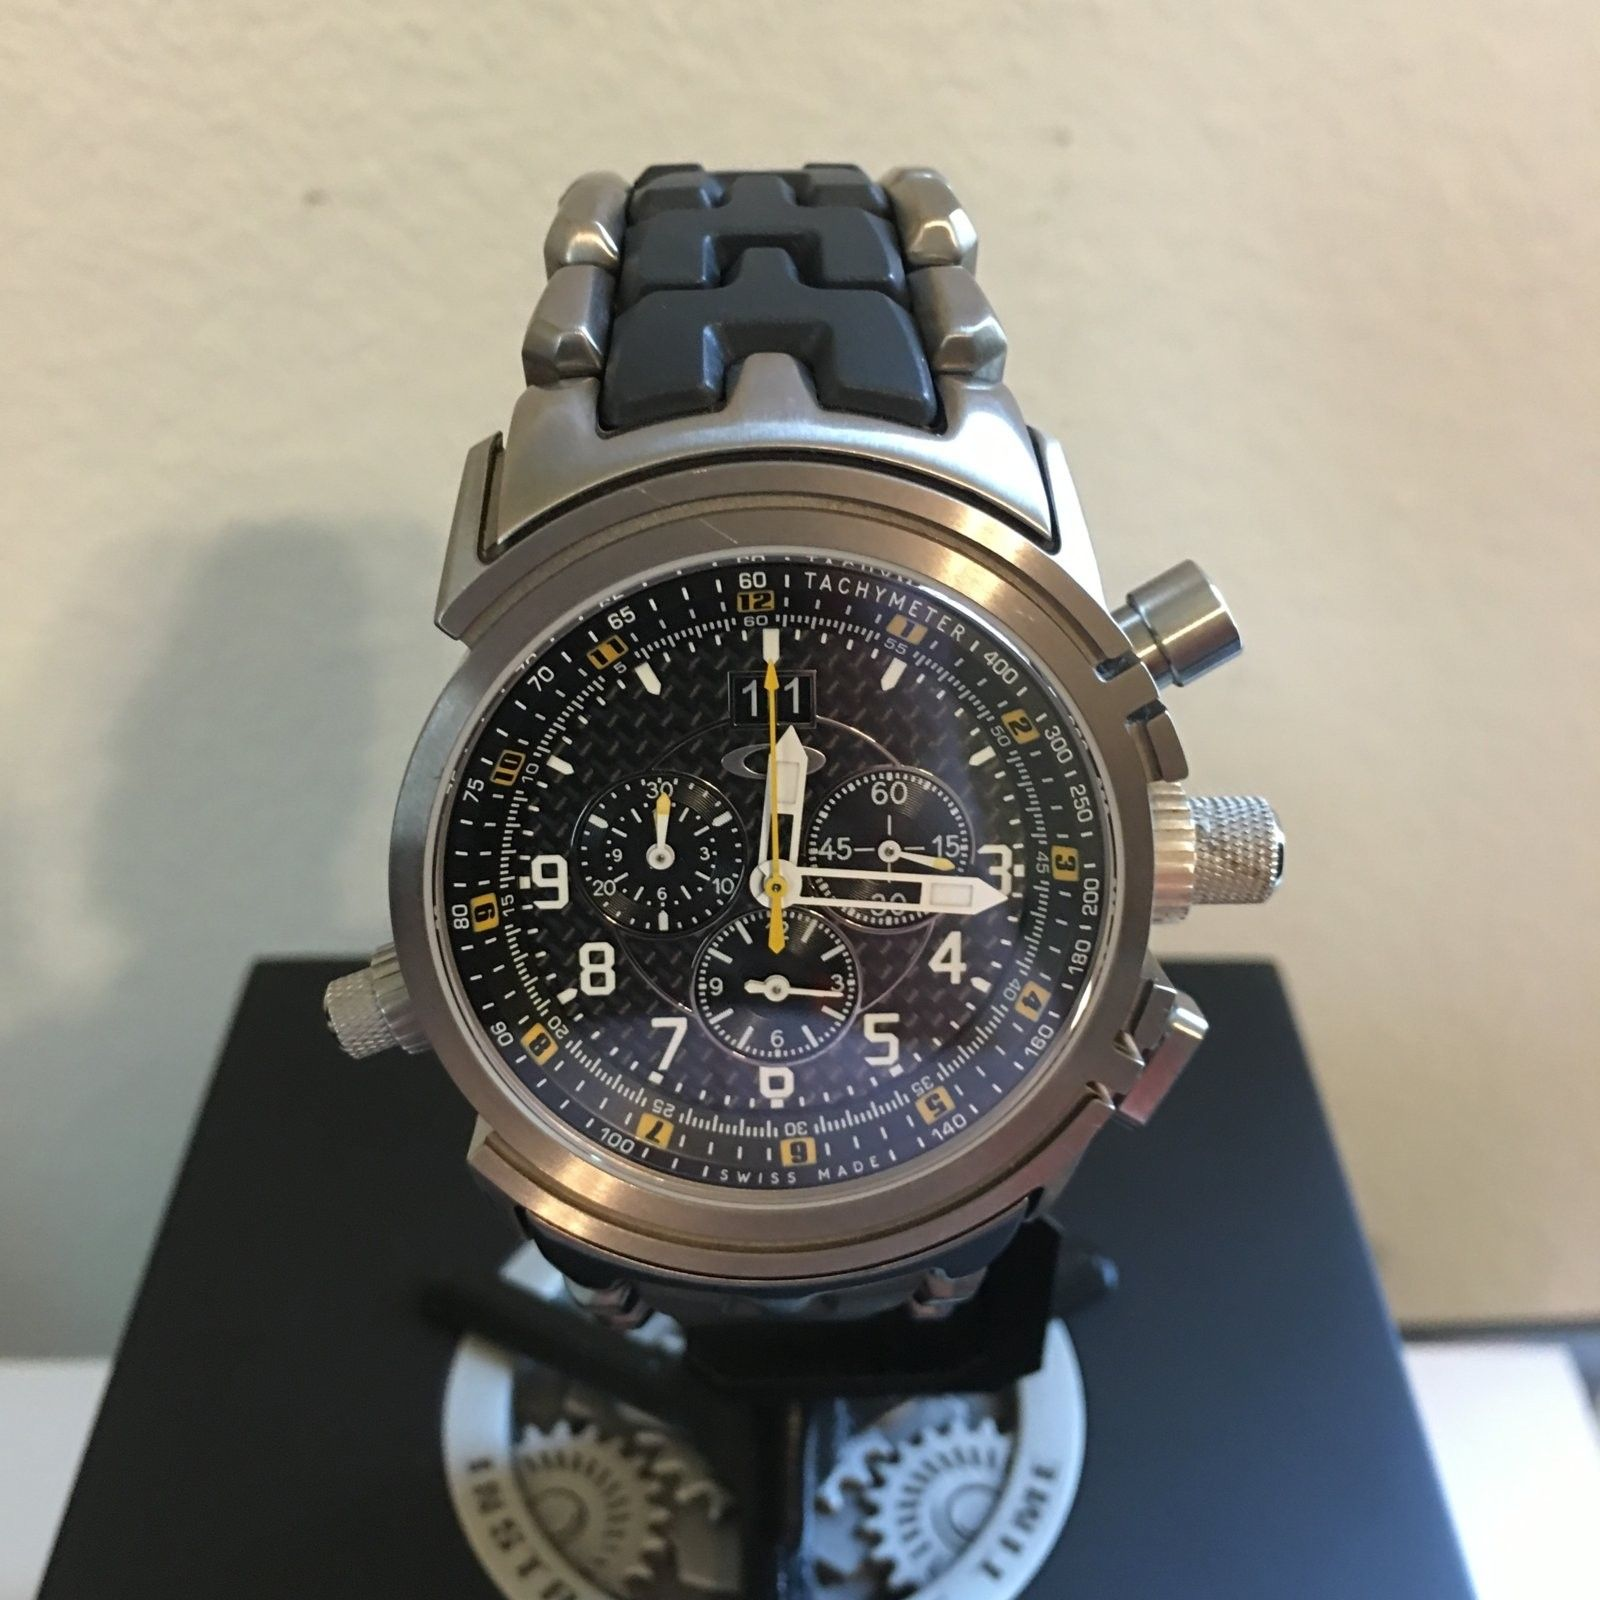 12-Gauge Special Edition Carbon Fiber/Yellow Dial (Free Watch Vault!) - IMG_0122.JPG